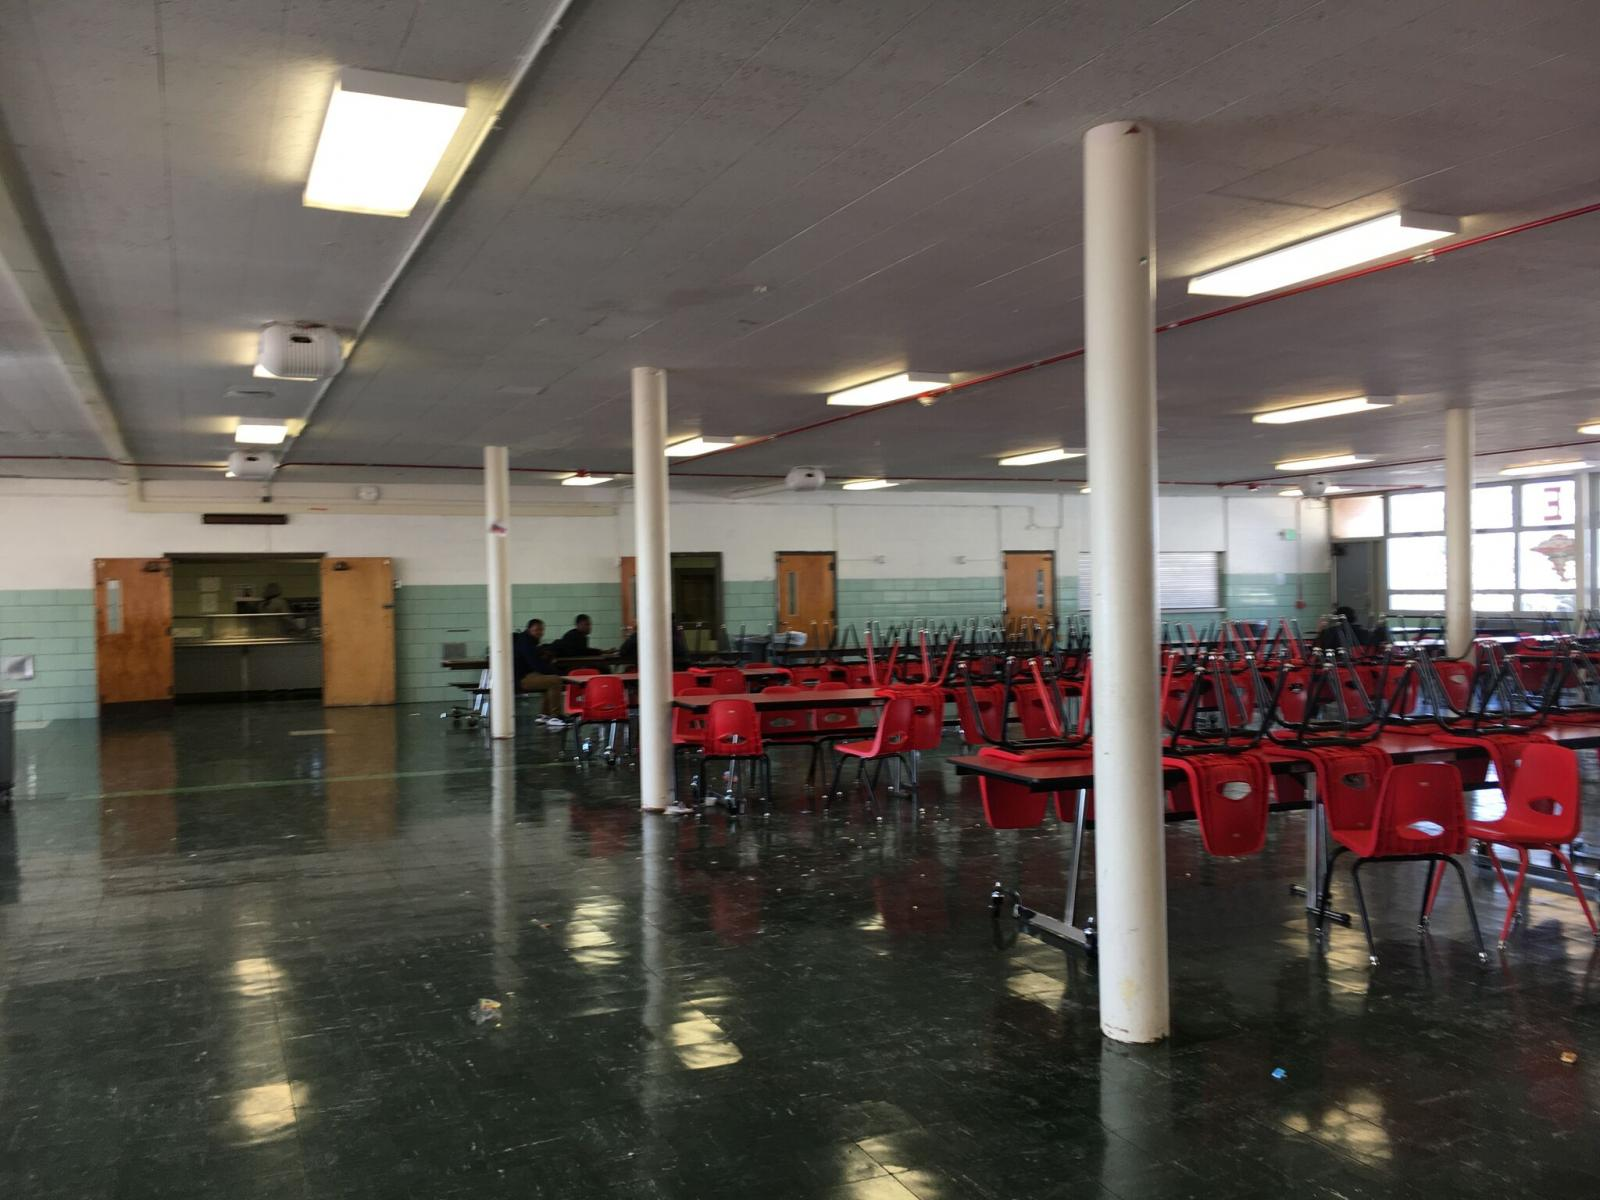 Before: Cafeteria